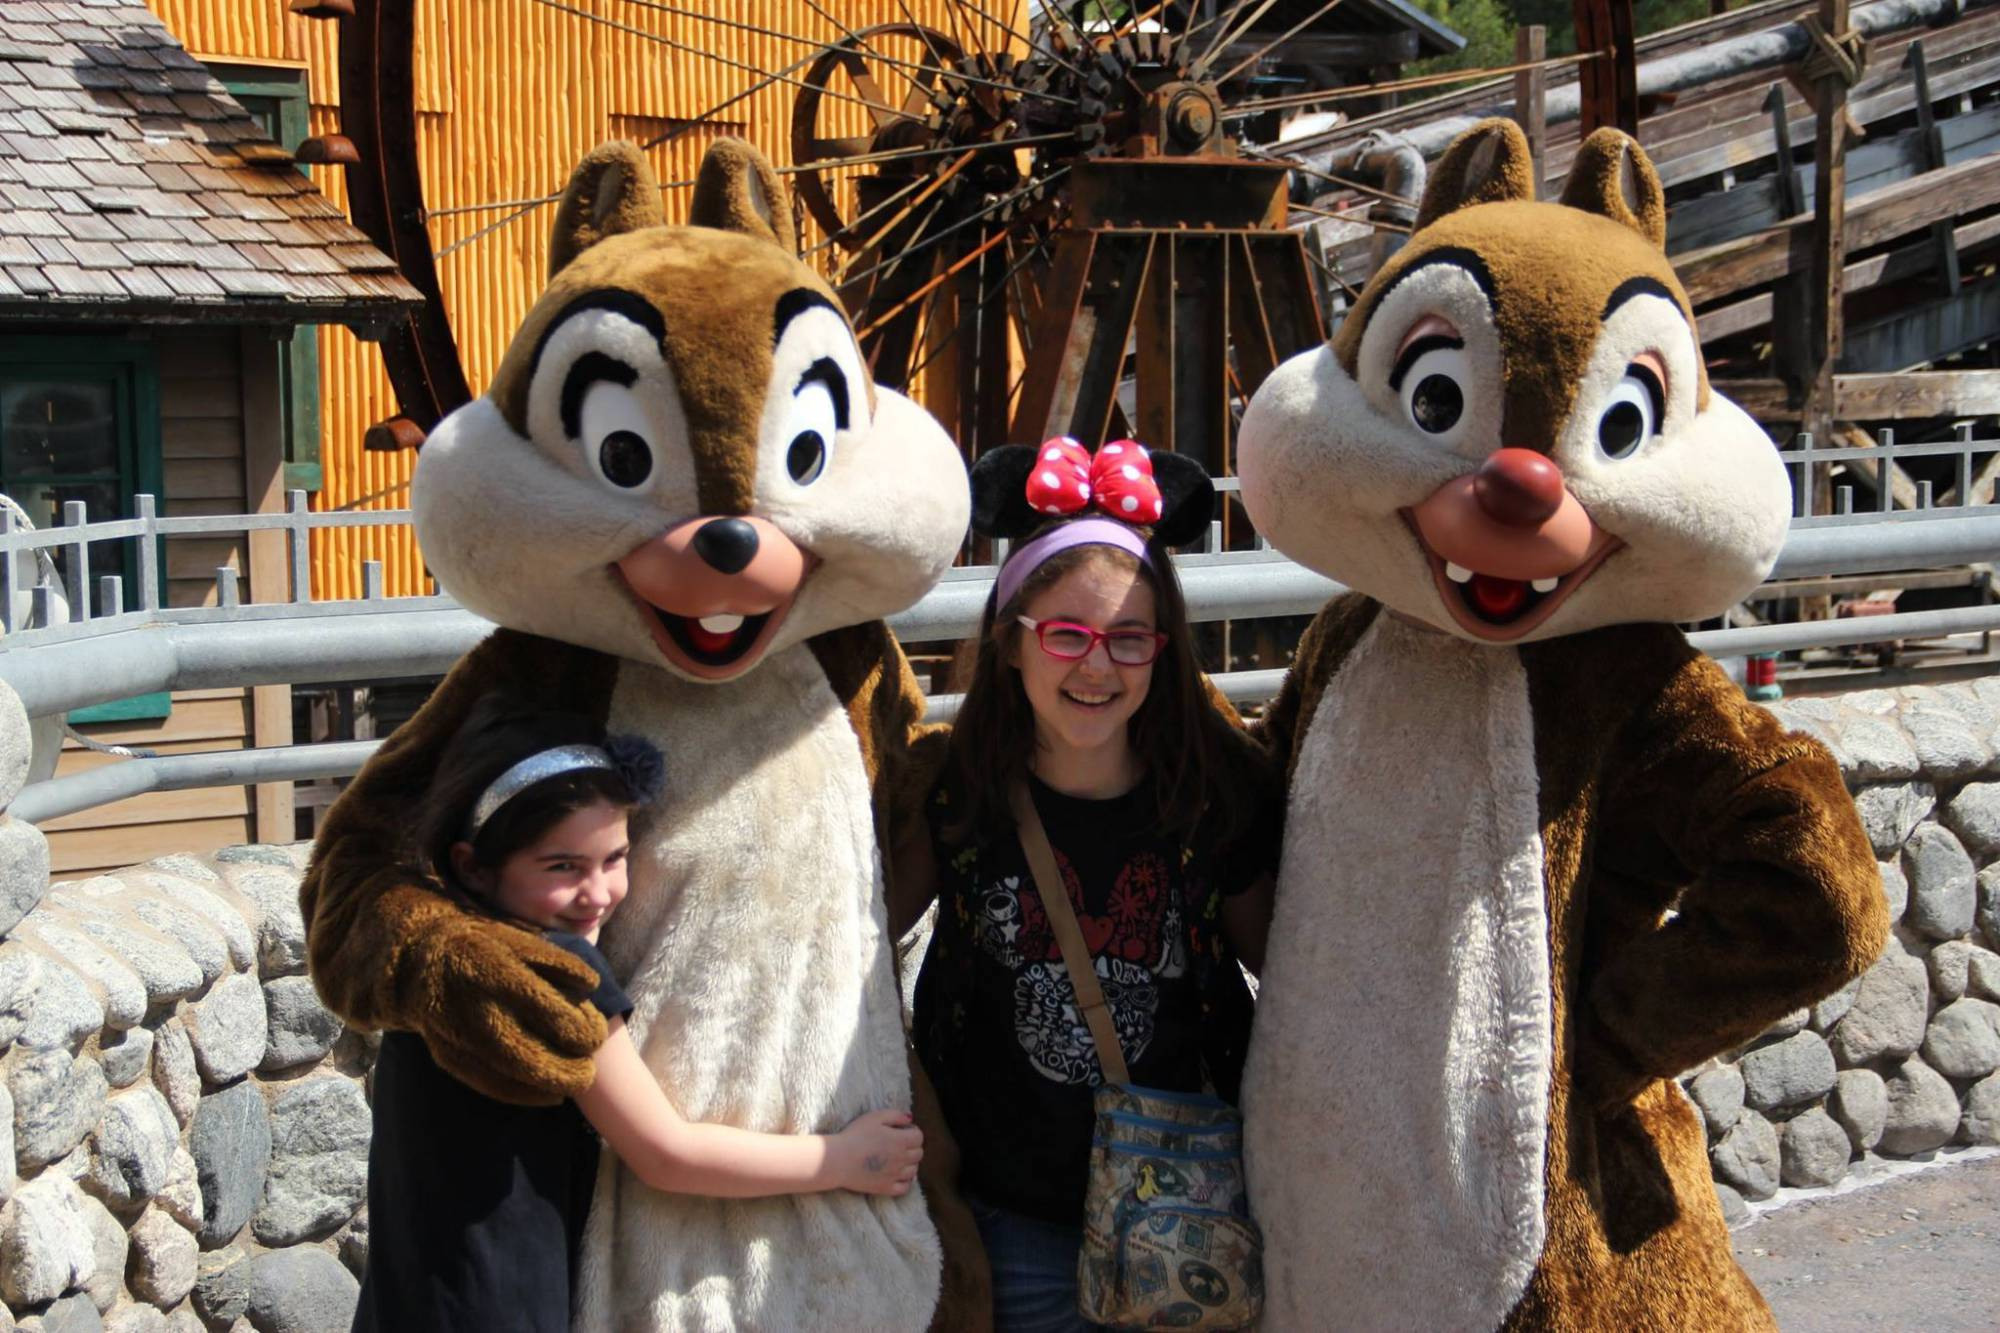 Eight things kids will like about Disneyland, by 10-year-old Abby Wear | PassPorter.com